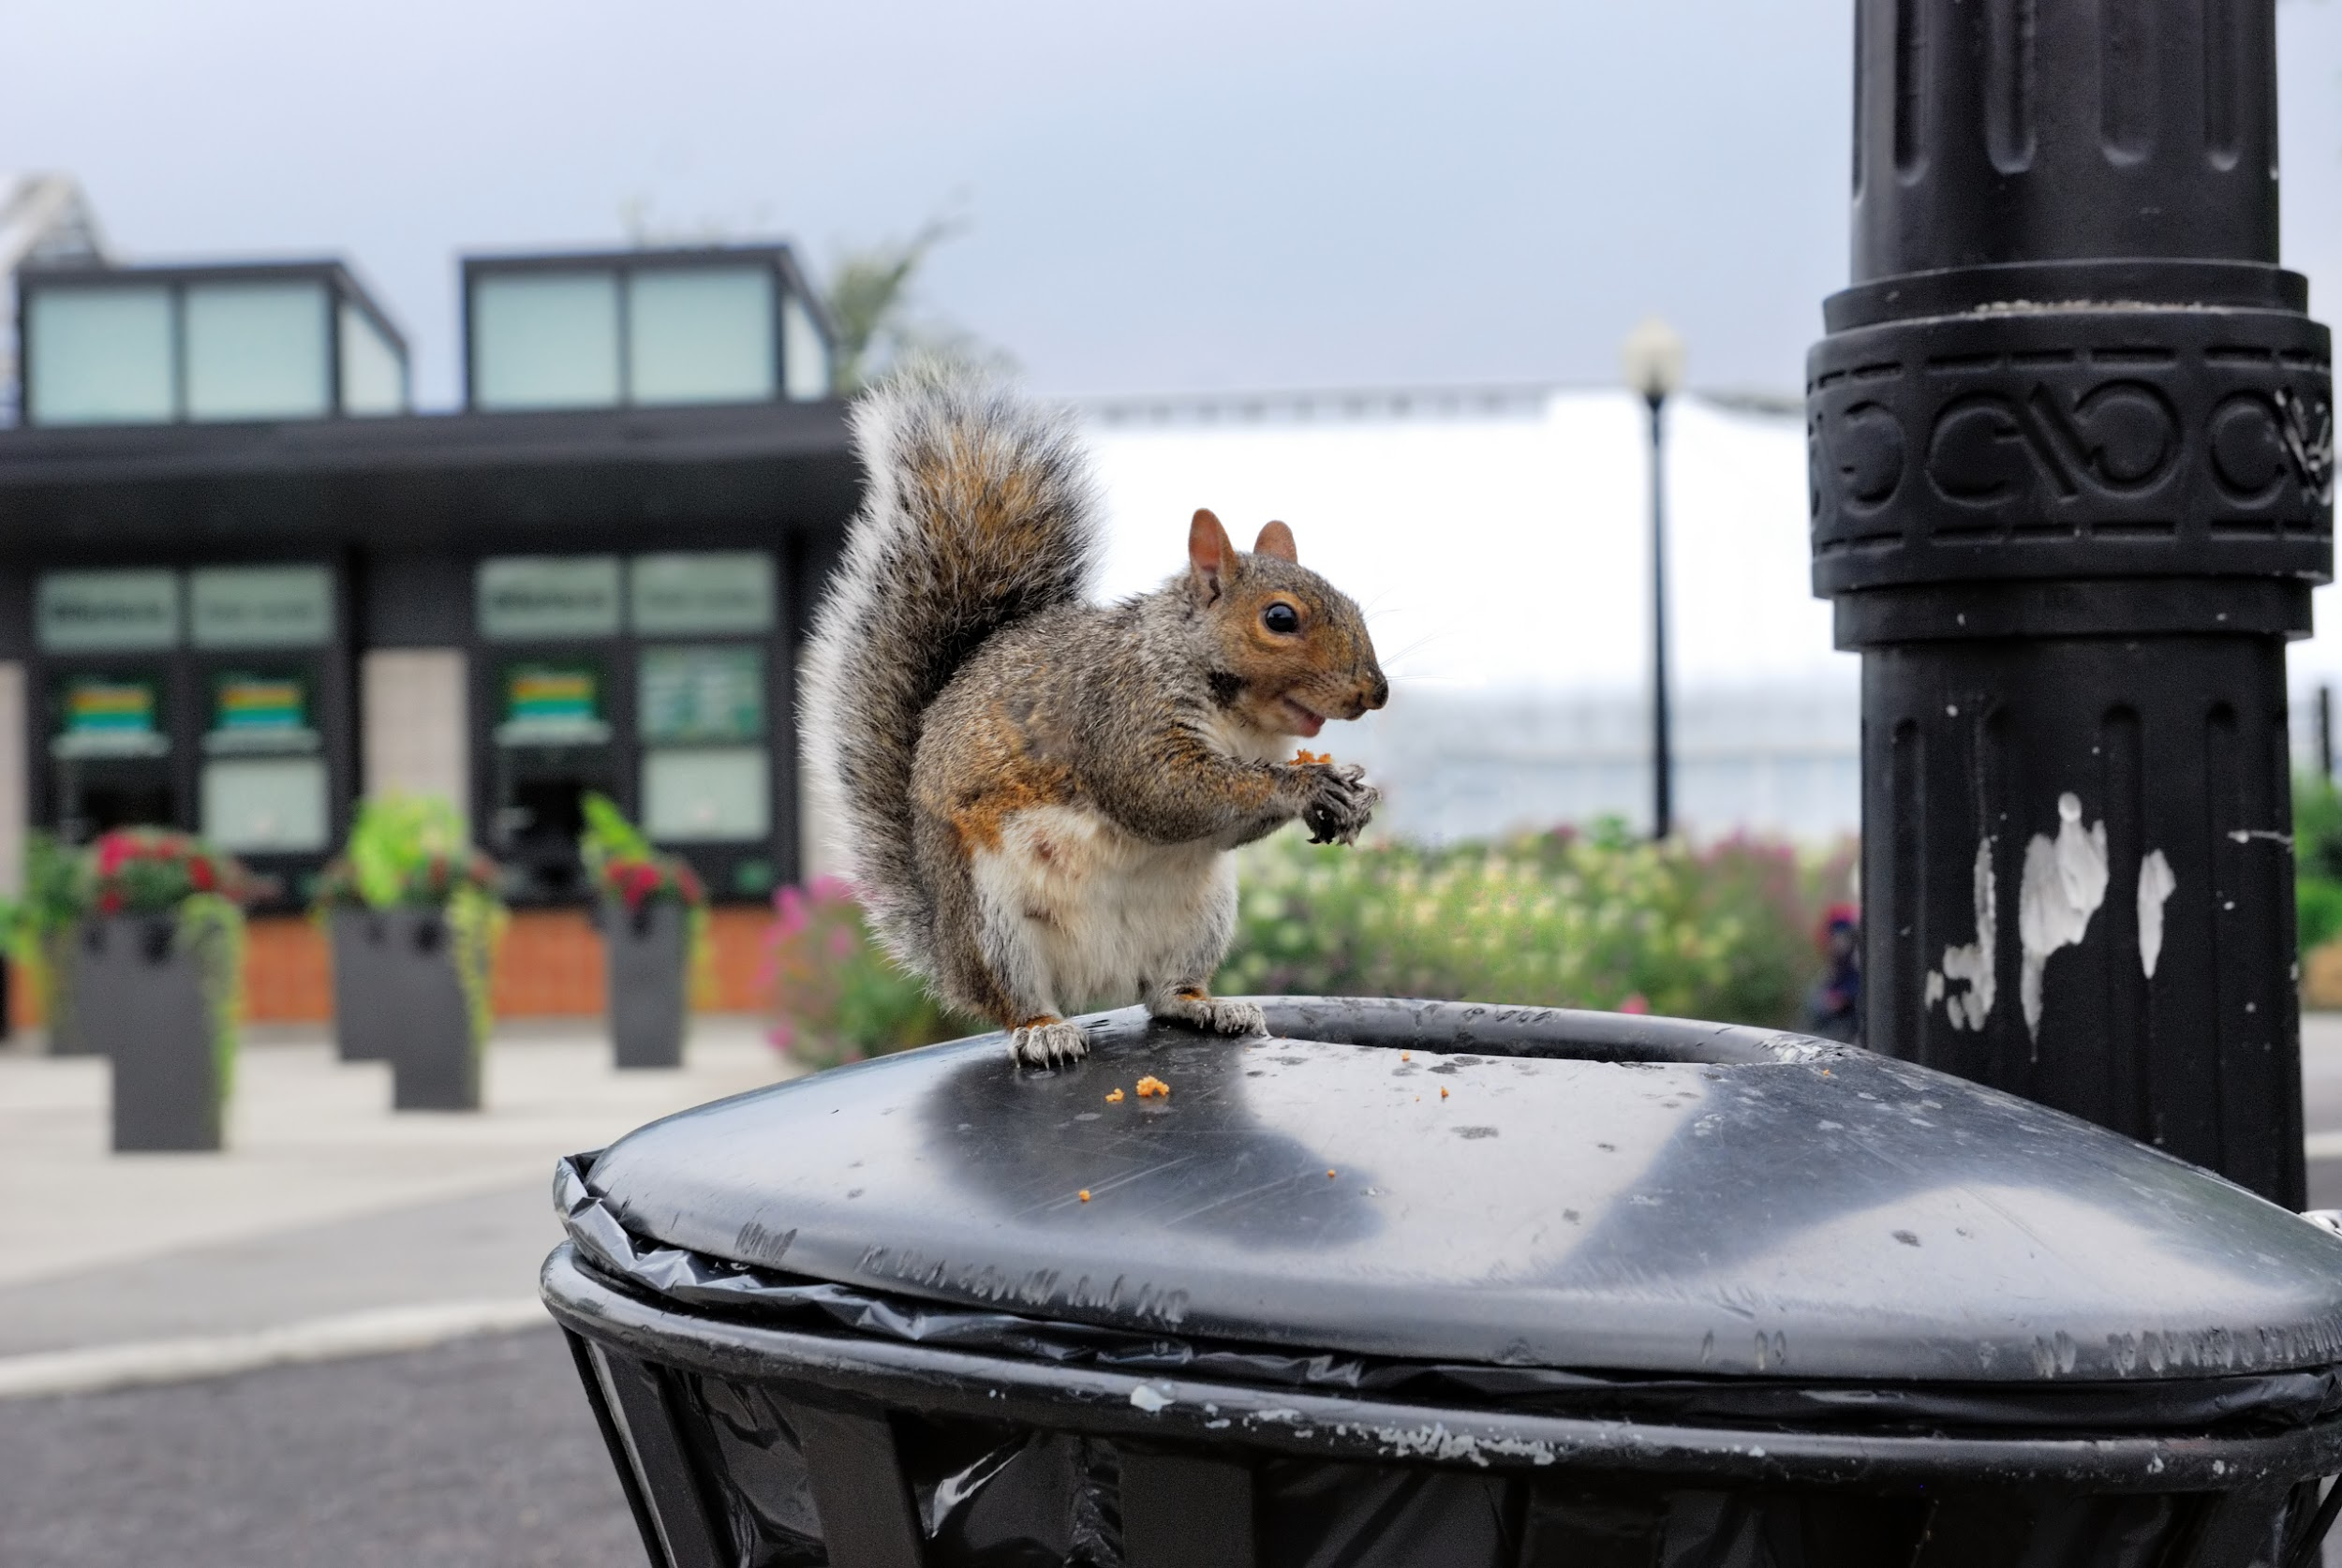 Figure 2 - This image and the one following are representative of our case study. All sorts of critters occupy our urban landscape, such as squirrels. (https://upload.wikimedia.org/wikipedia/commons/6/69/Urban_wildlife_-_squirrel.jpg)